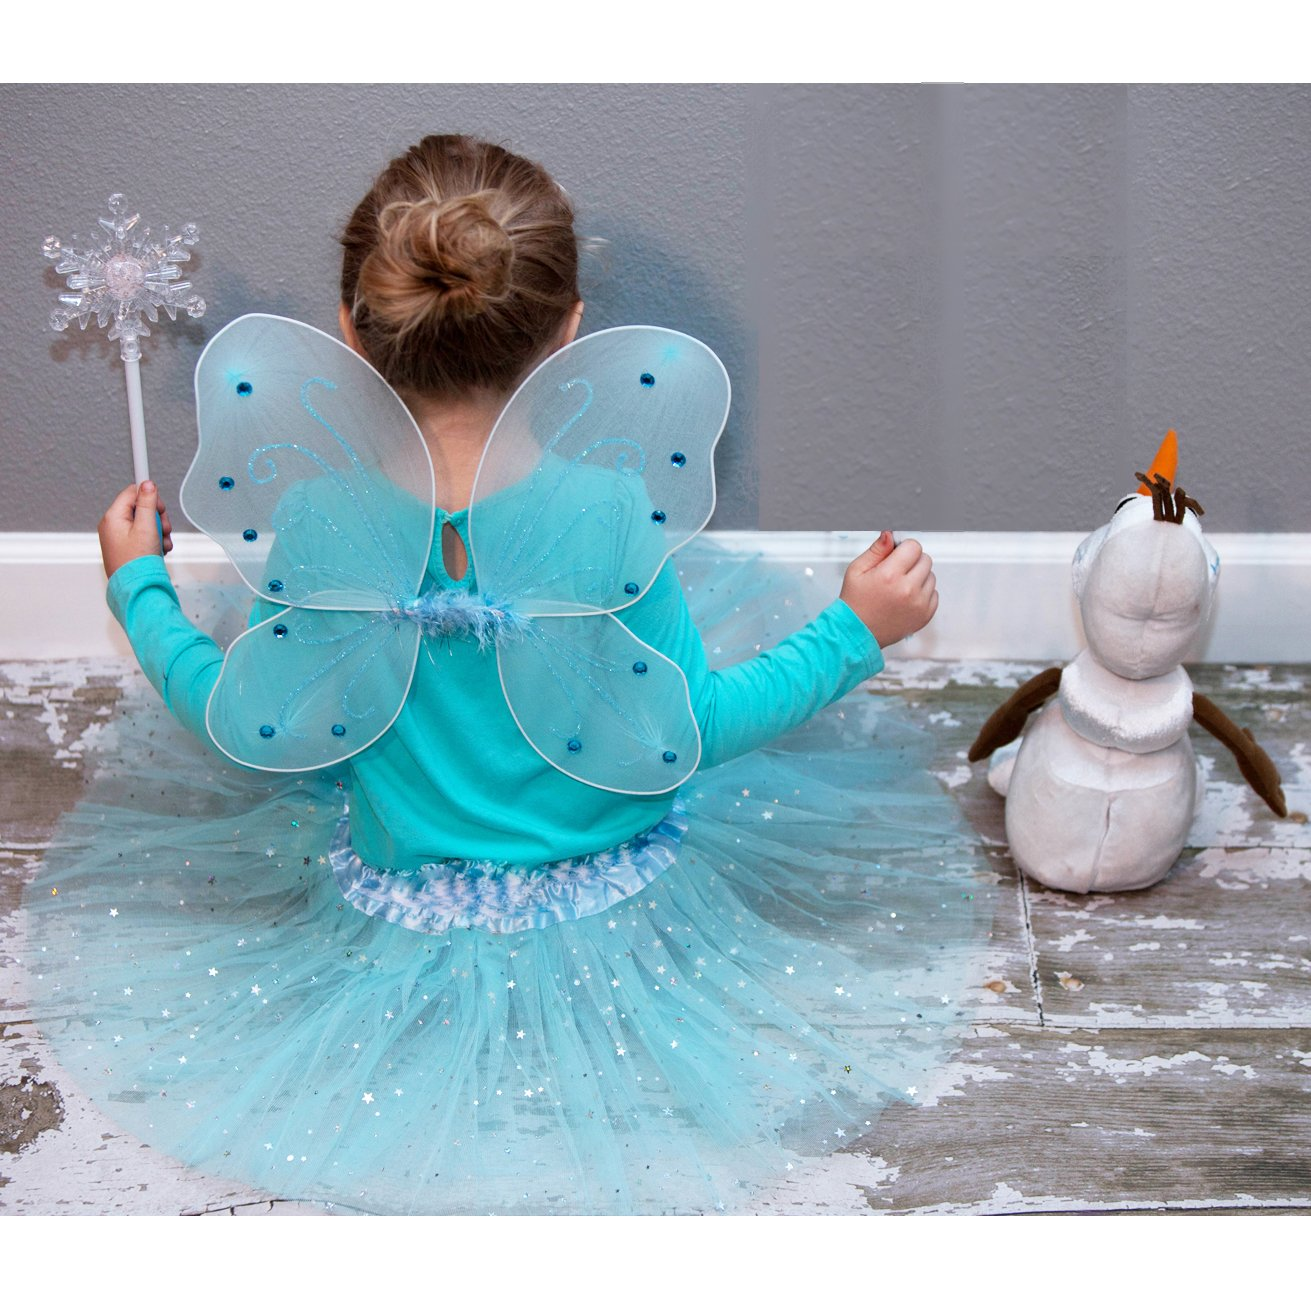 Frozen Inspired Fairy Princess Set Light Up Snowflake Wand Let It Go Band by Lilly and the Bee Novelties (Image #2)